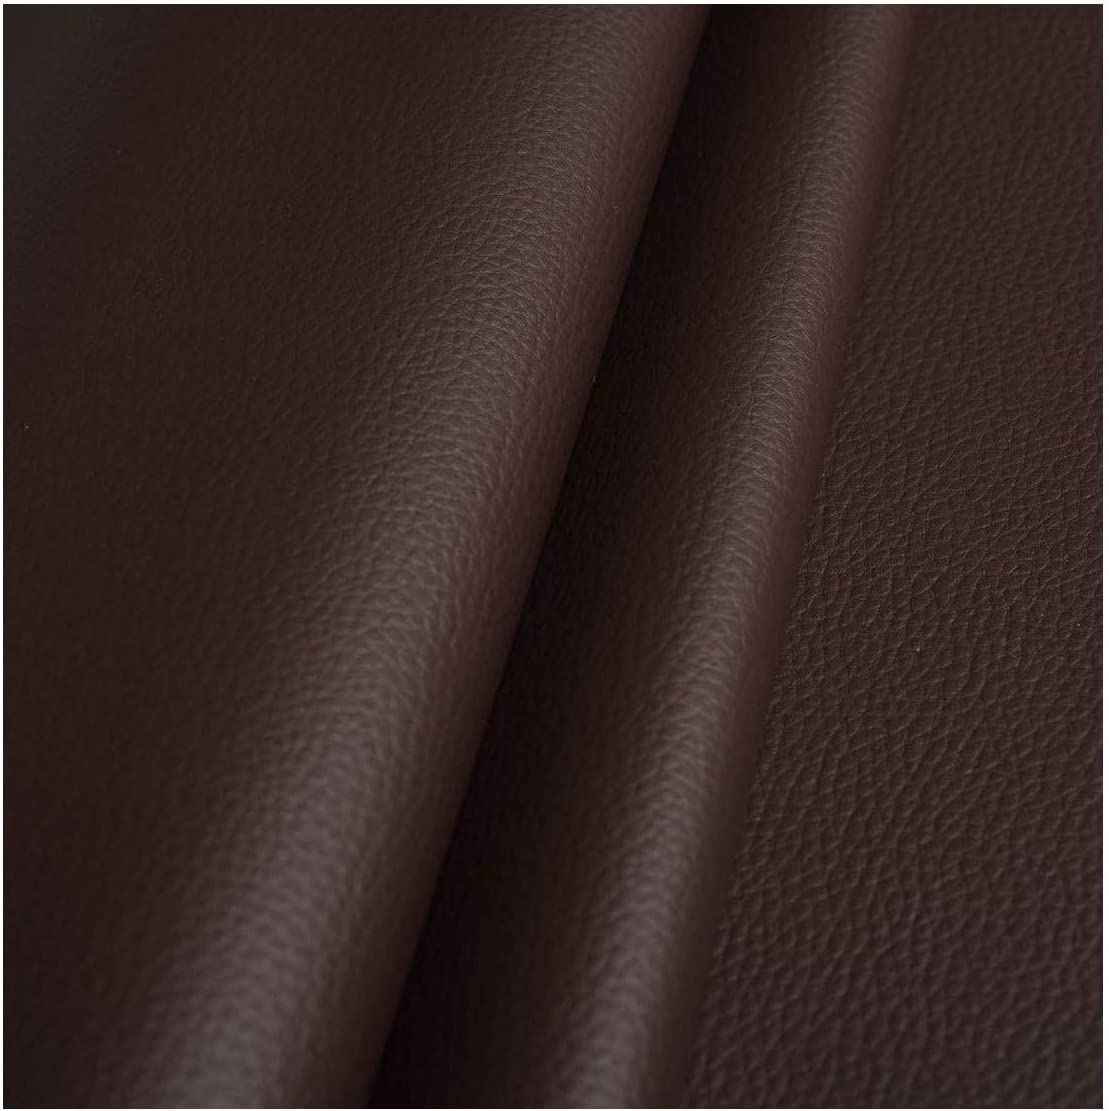 Brown FAUX LEATHER LEATHERETTE UPHOLSTERY FABRIC WIDELY USED